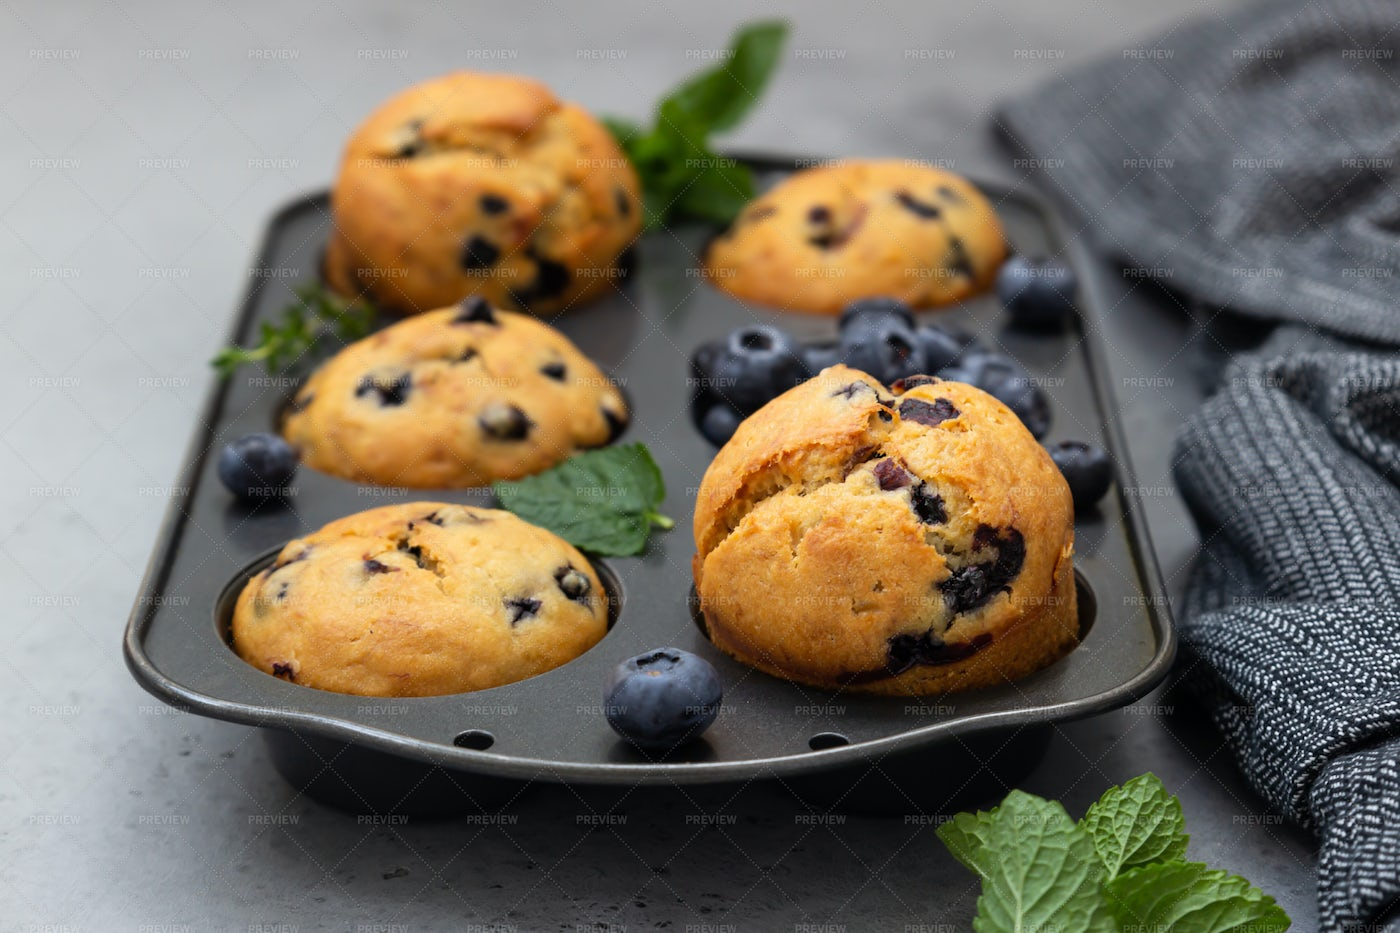 Blueberry Muffins In A Muffin Tin: Stock Photos